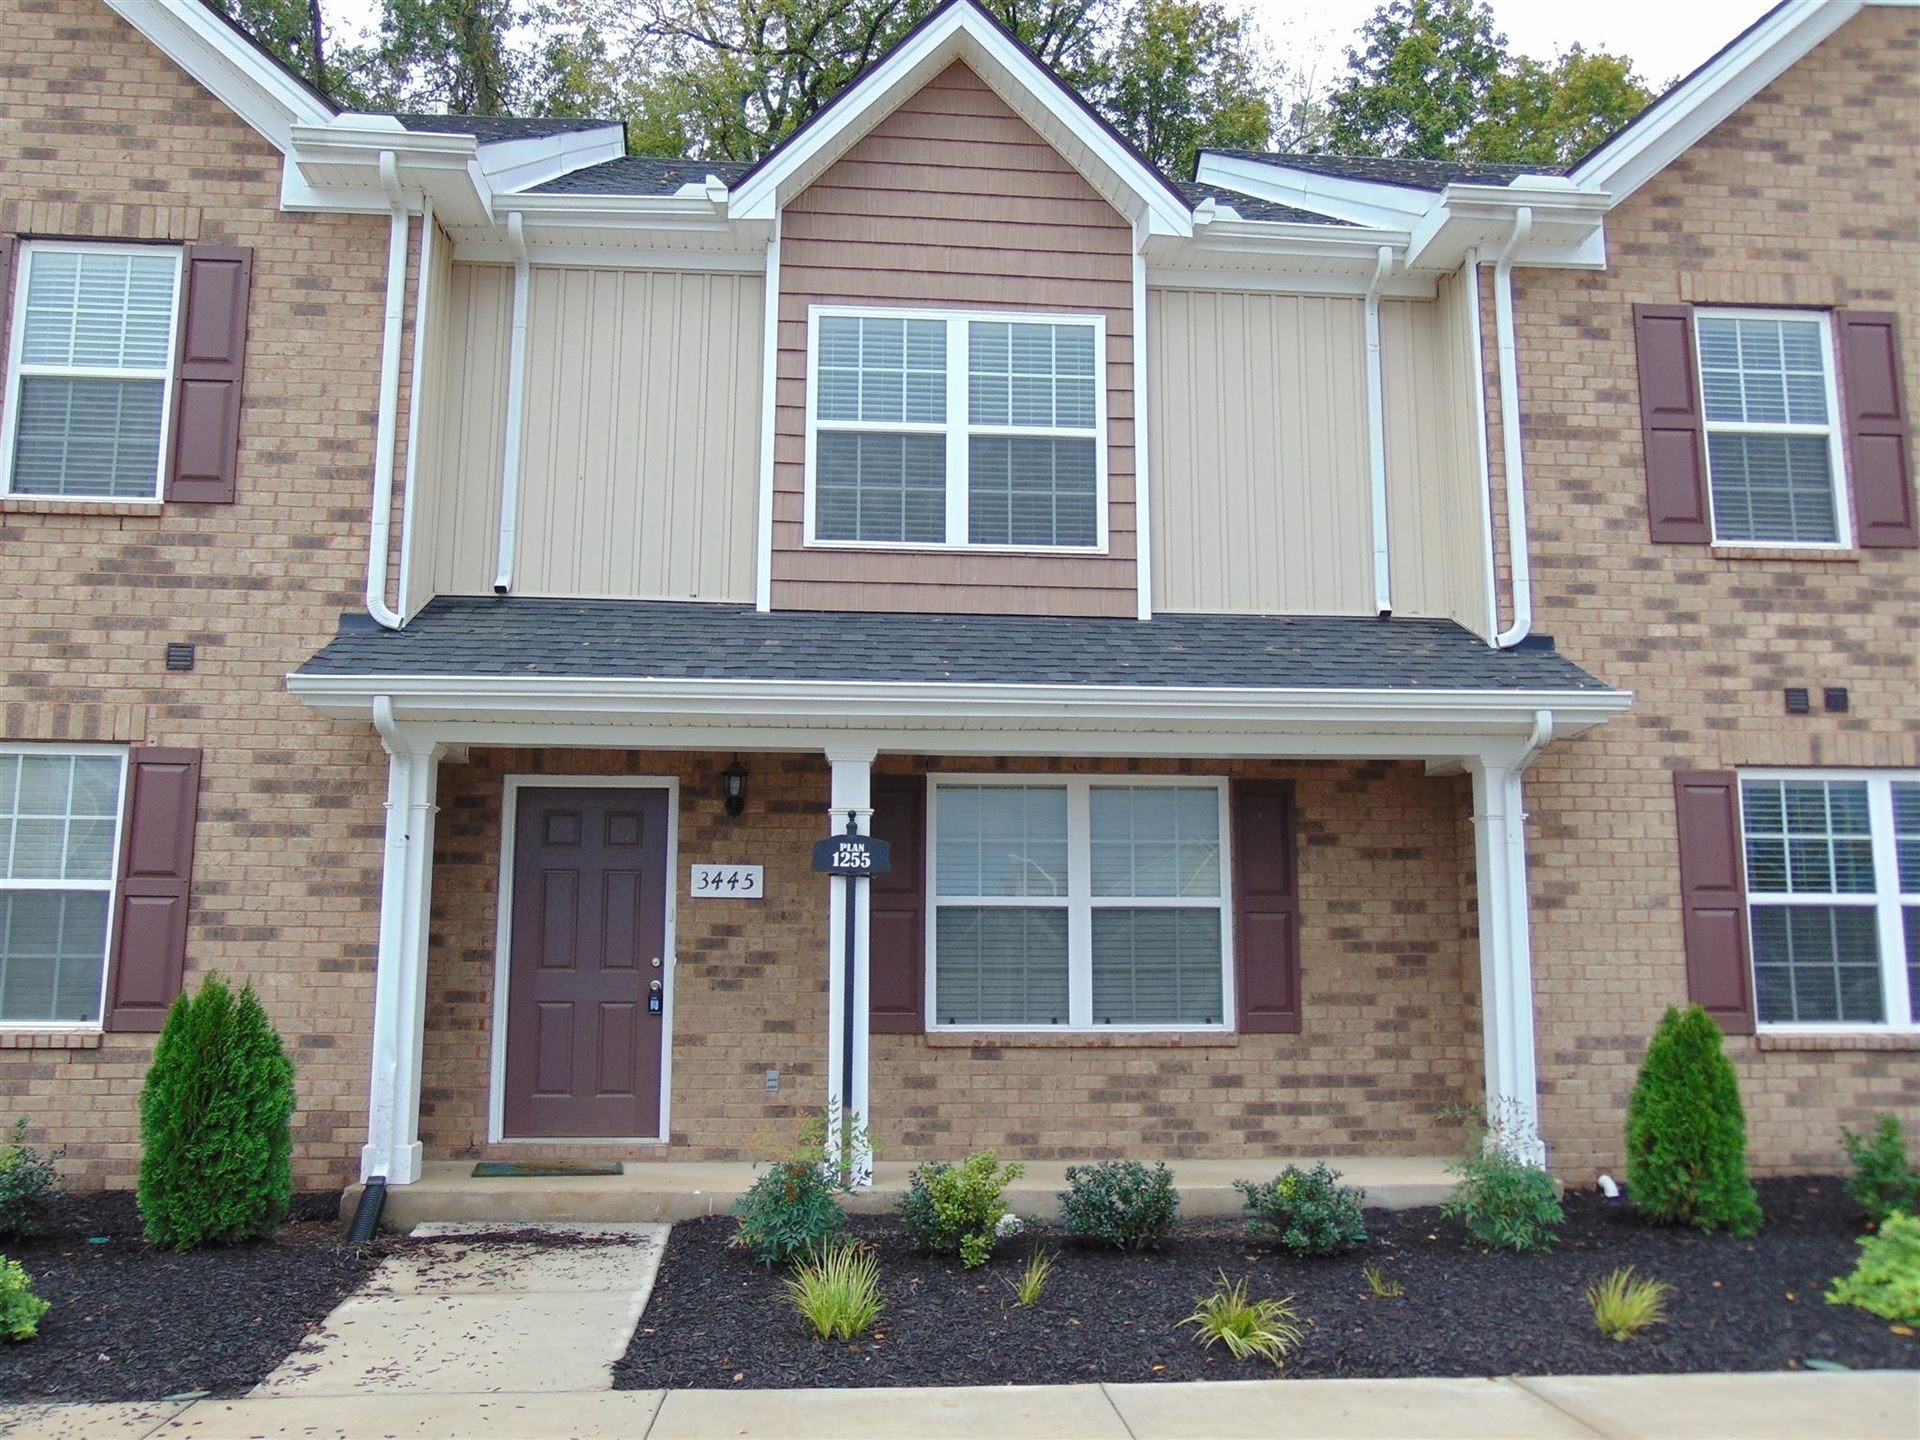 3419 Donerail Circle #381, Murfreesboro, TN 37128 - MLS#: 2220796